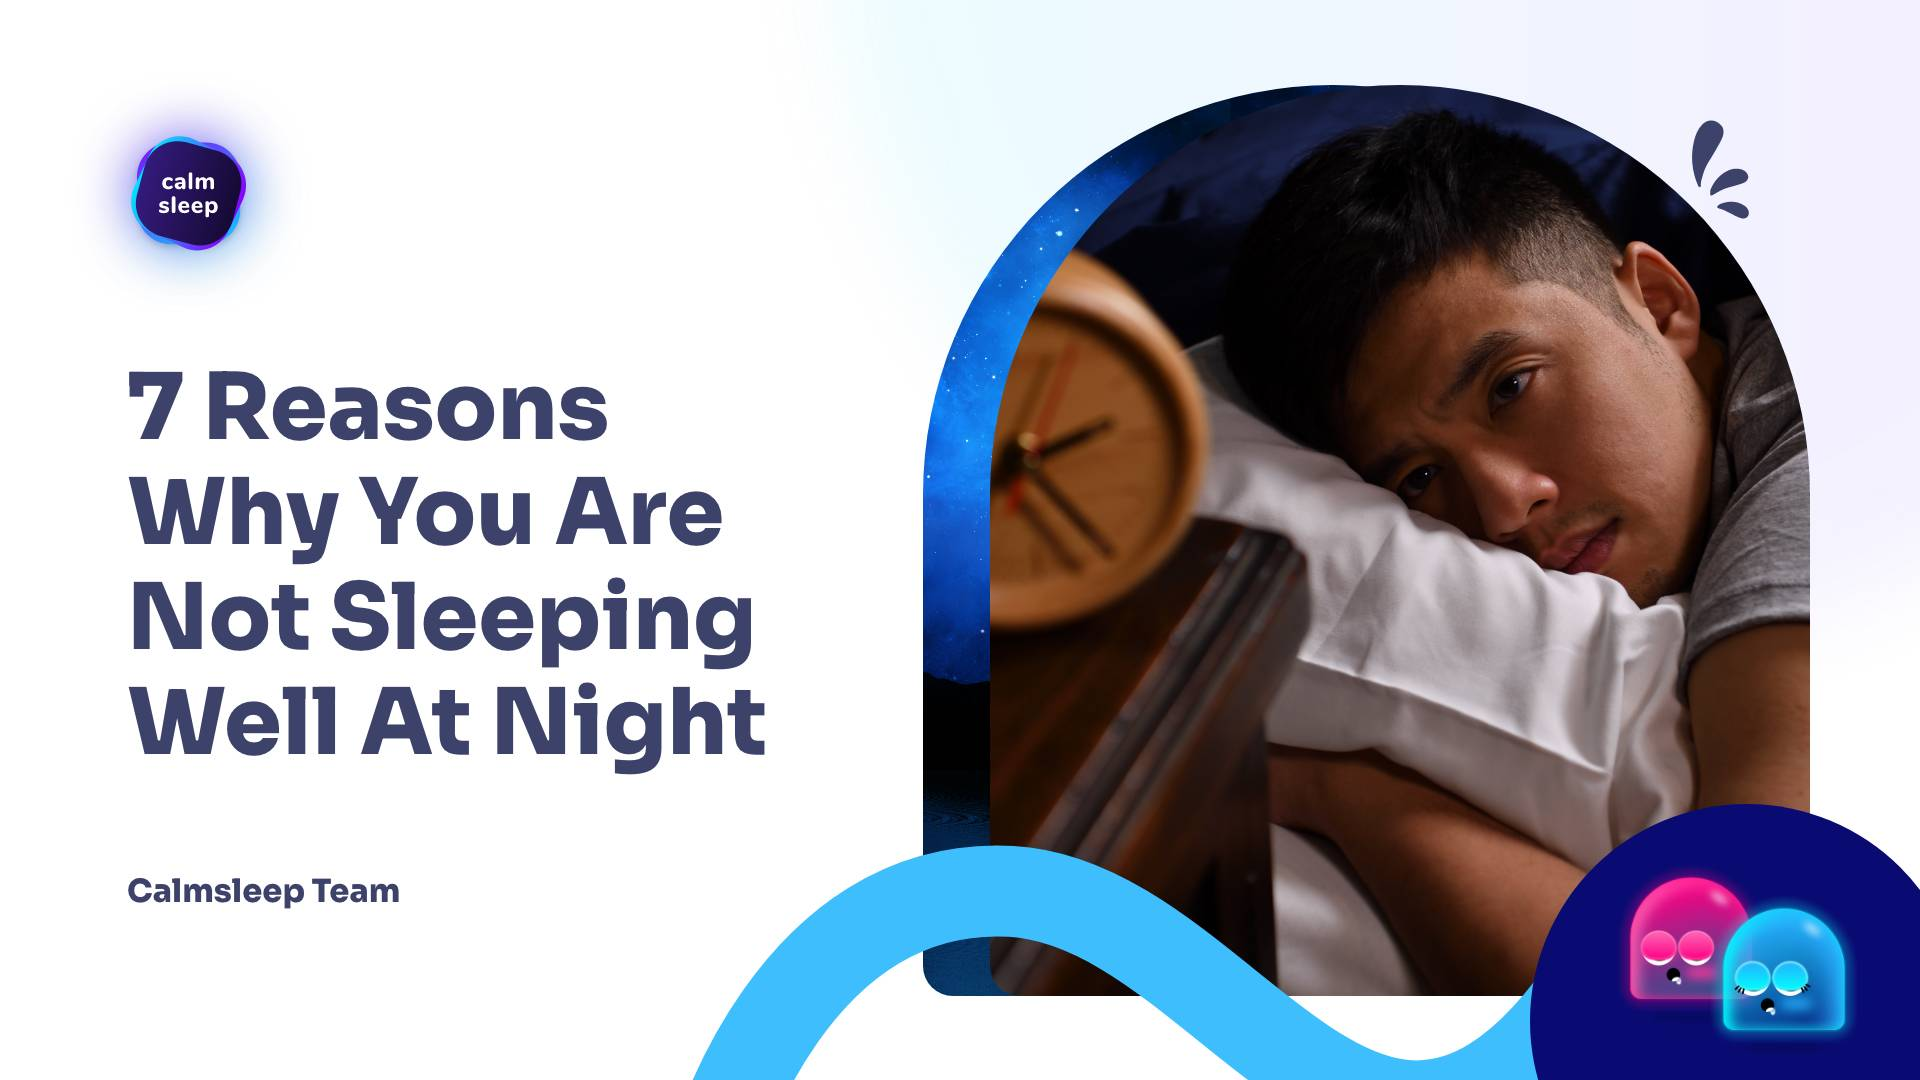 7 Reasons Why You Are Not Sleeping Well At Night